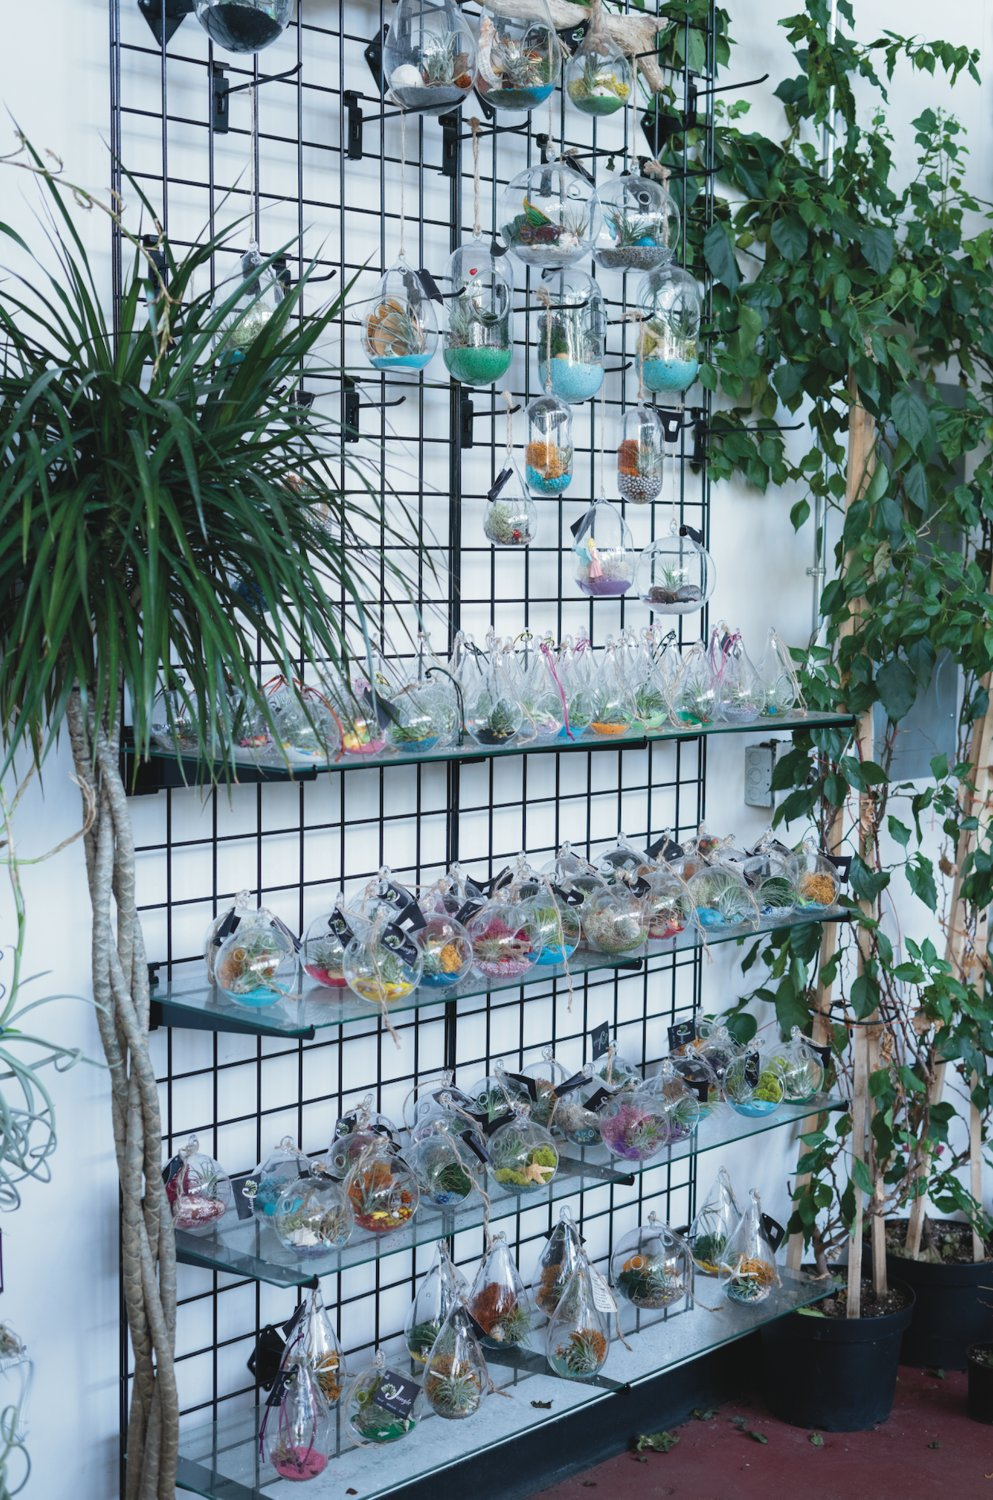 Find and take home your own air plant, a low-stress green addition to your home.